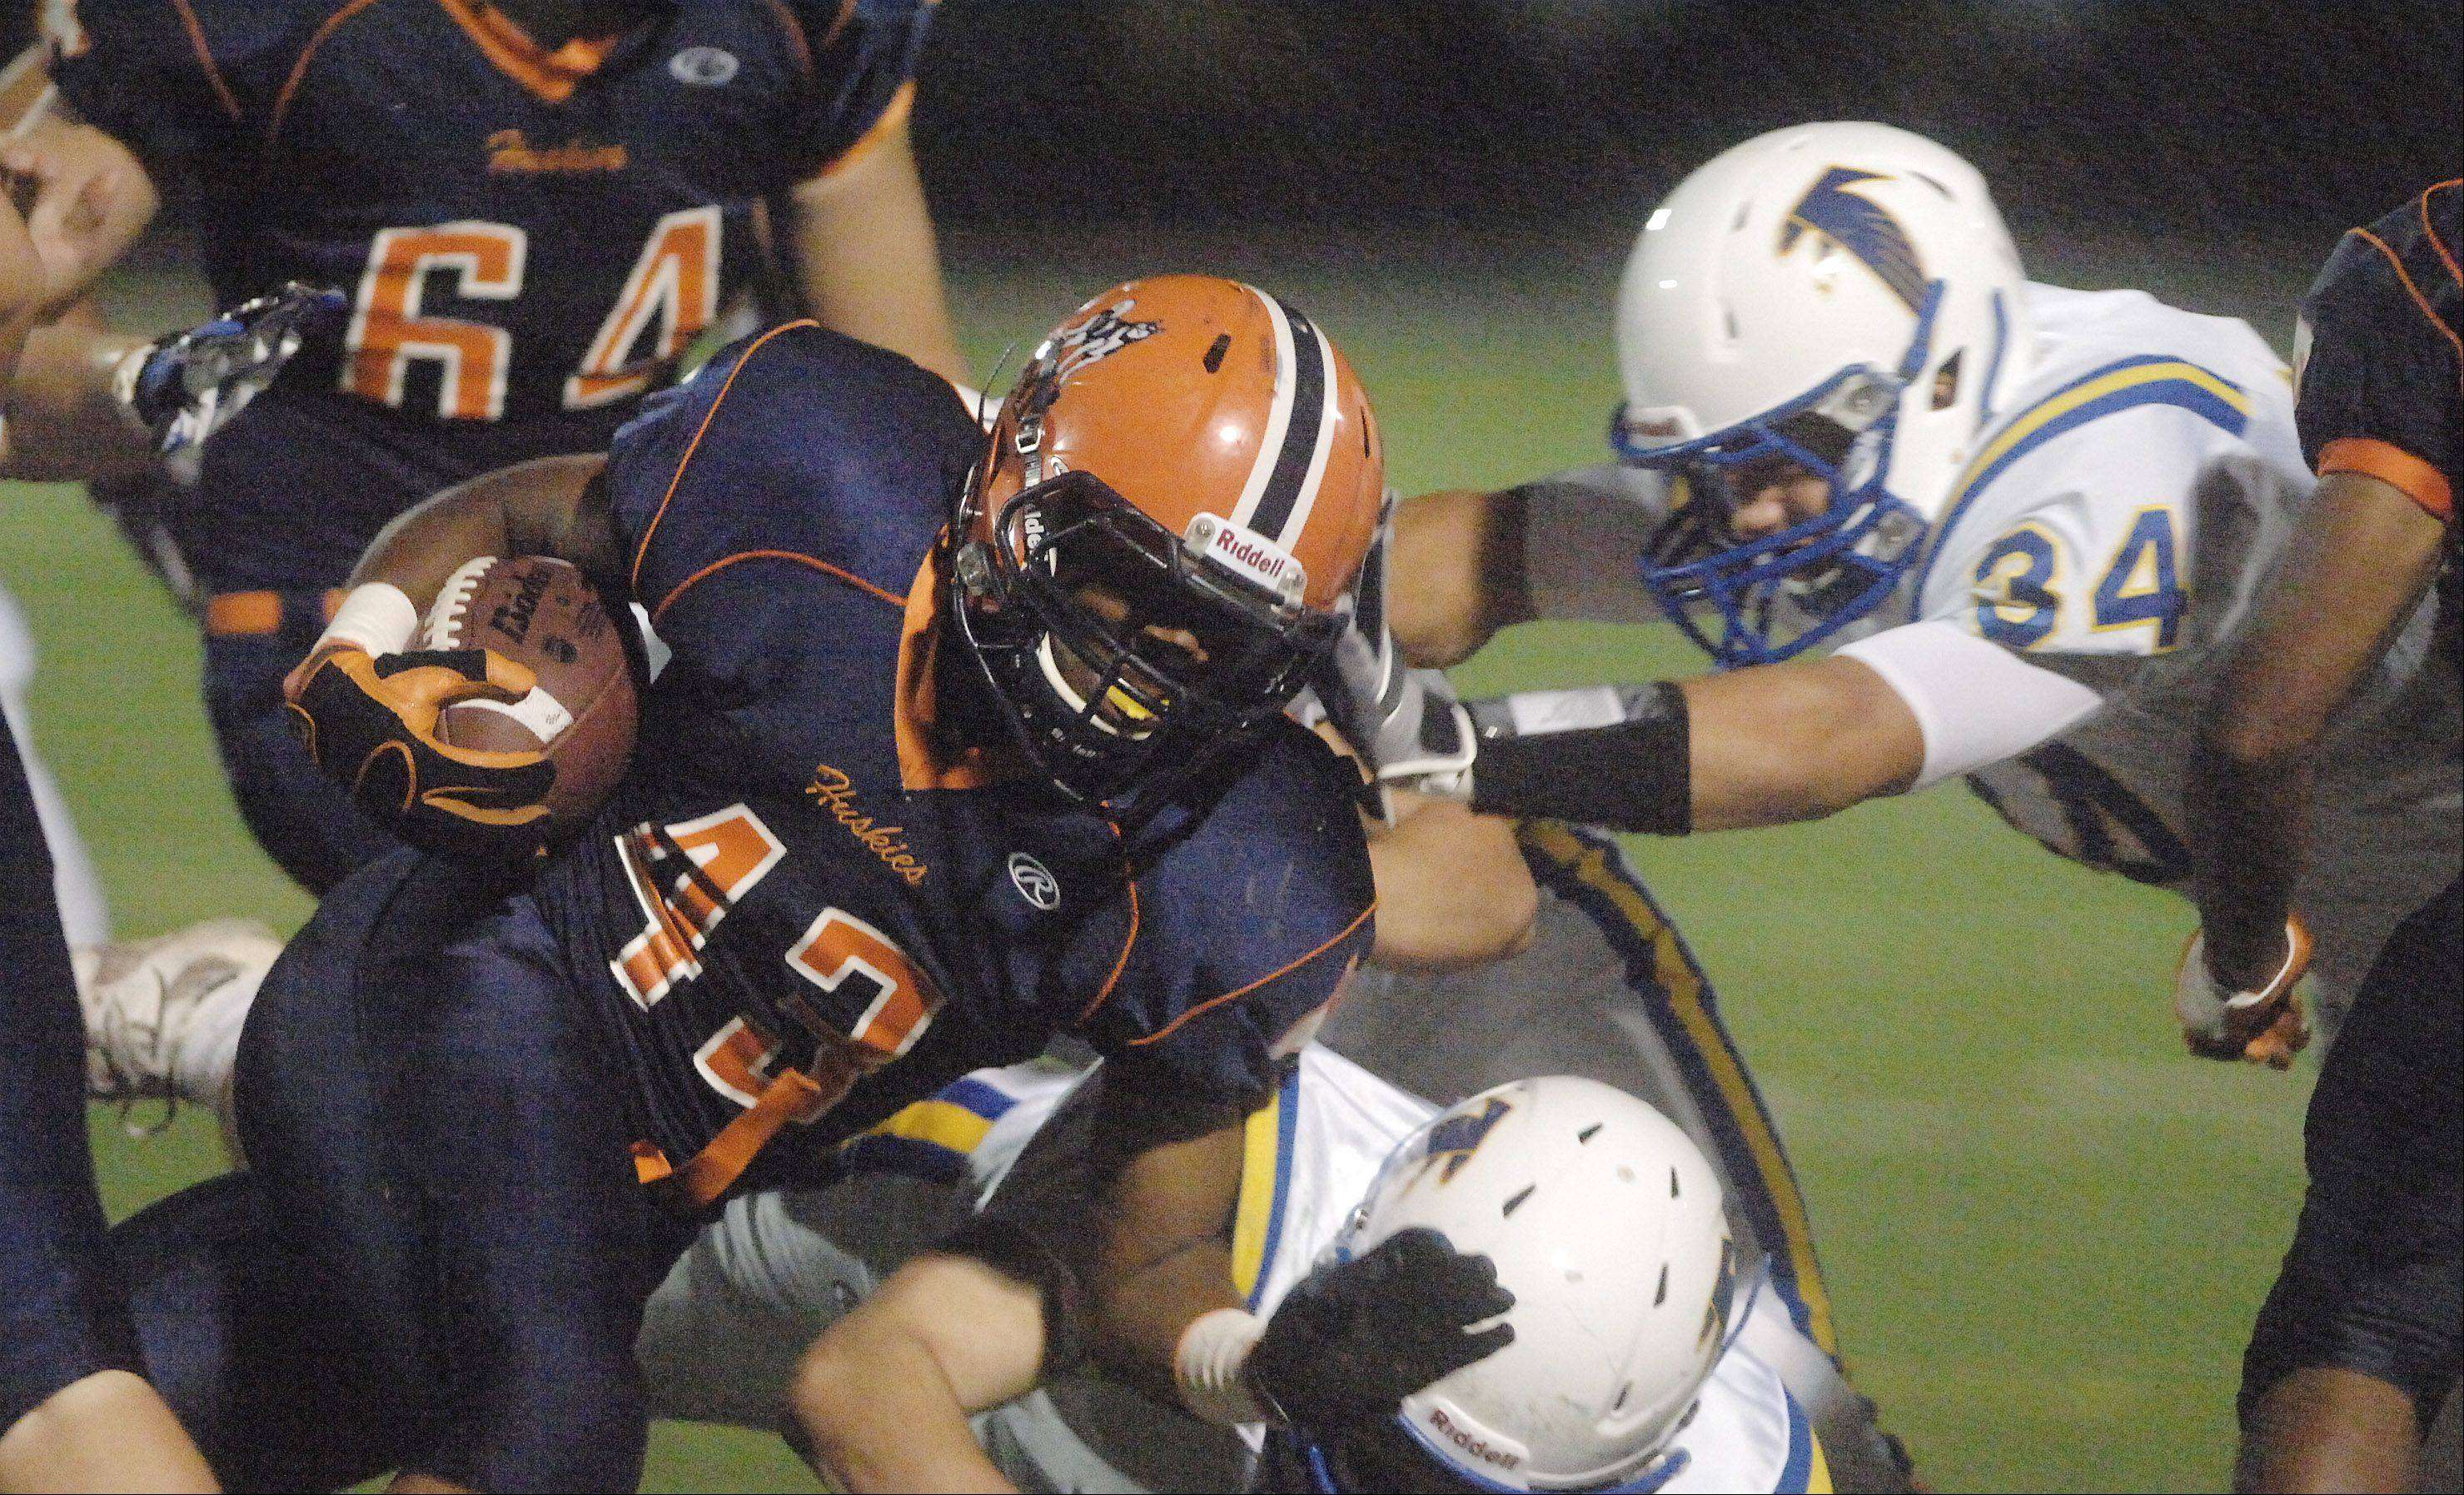 Desean Brown of Naperville North is pulled down by JD Marconi of Wheaton North.